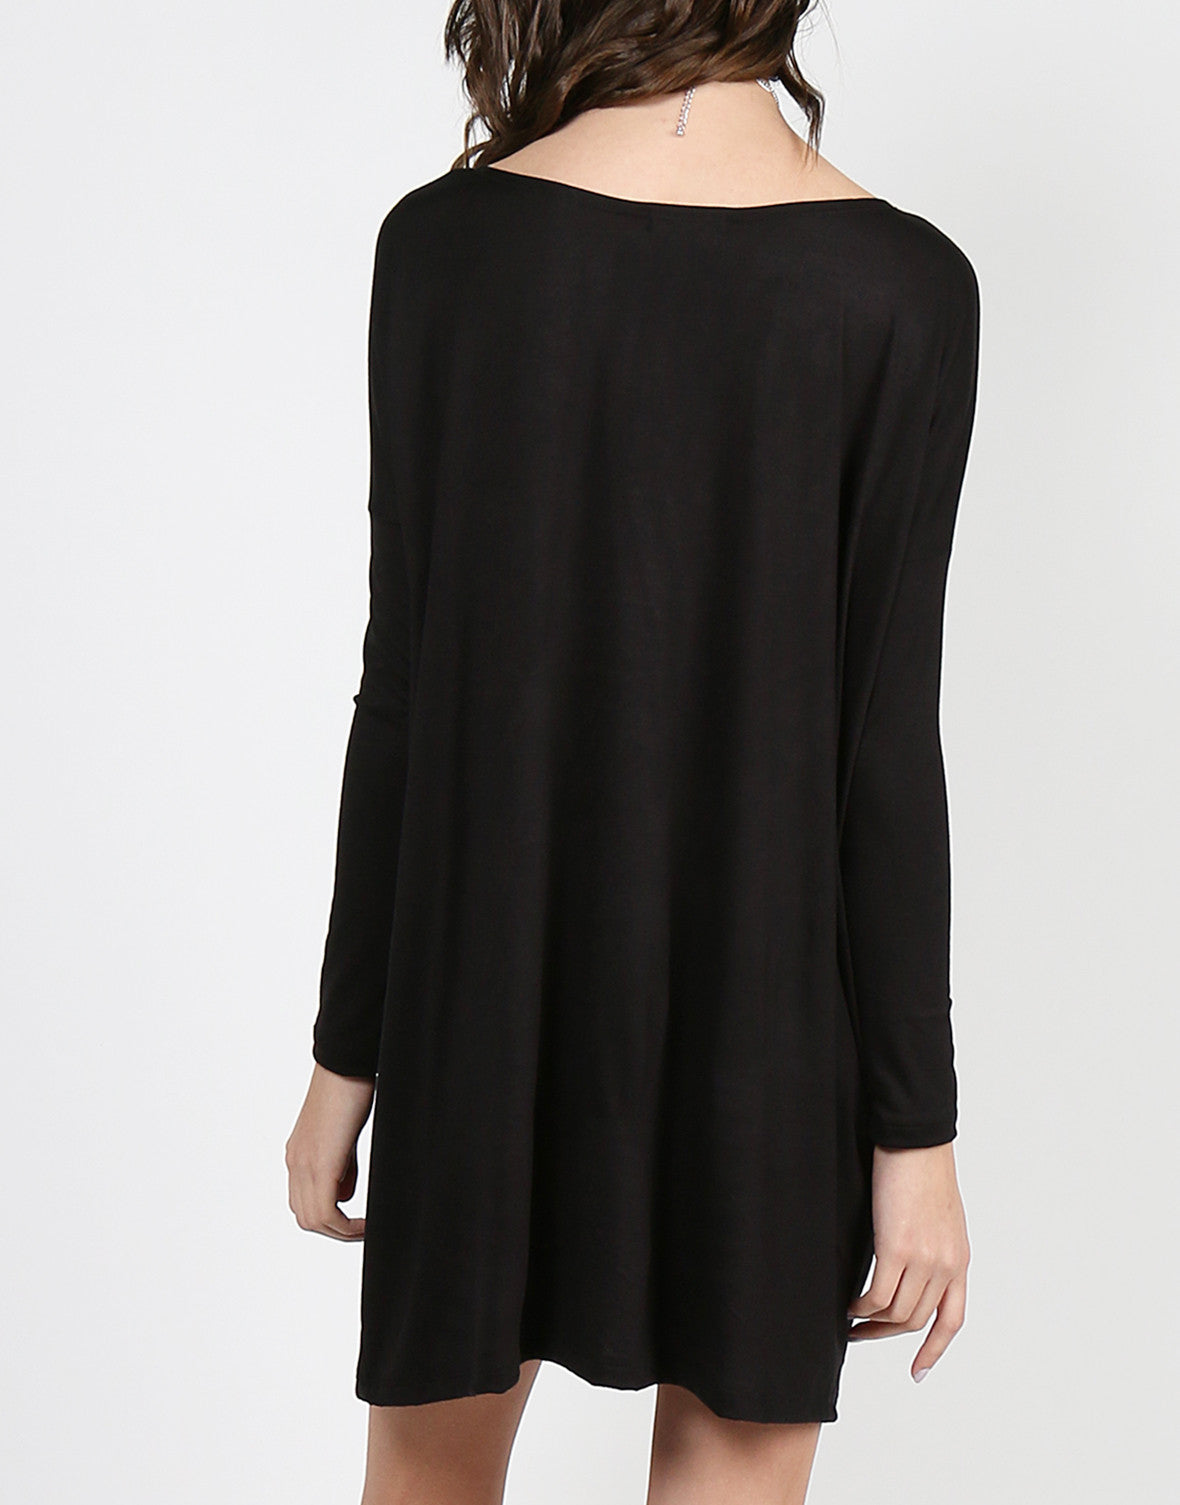 Long Sleeve Shirt Dress - Black